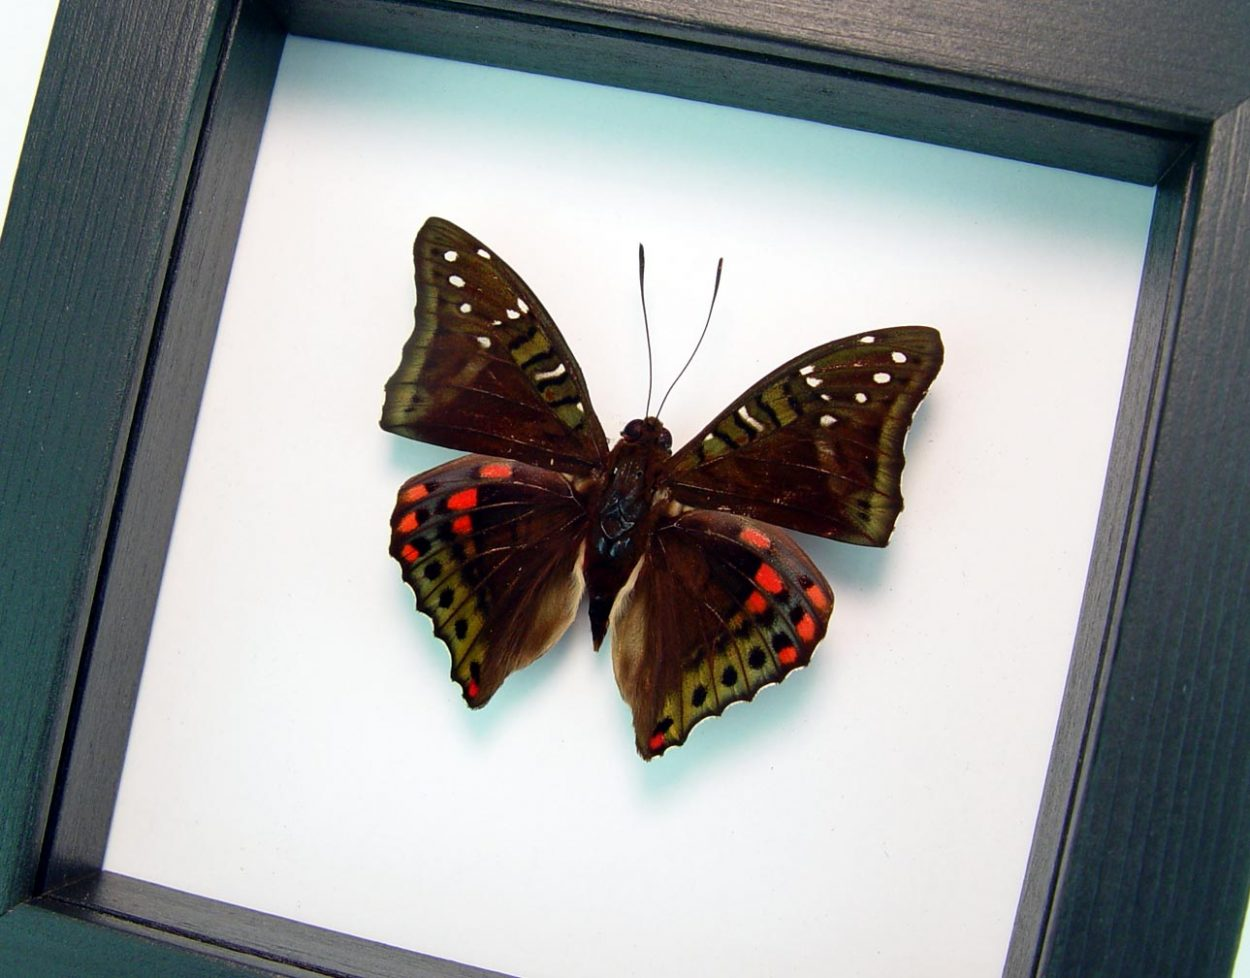 Euthalia malaccana Green Red Framed Butterfly Fruhstorfer's baron Classic Black Display ooak